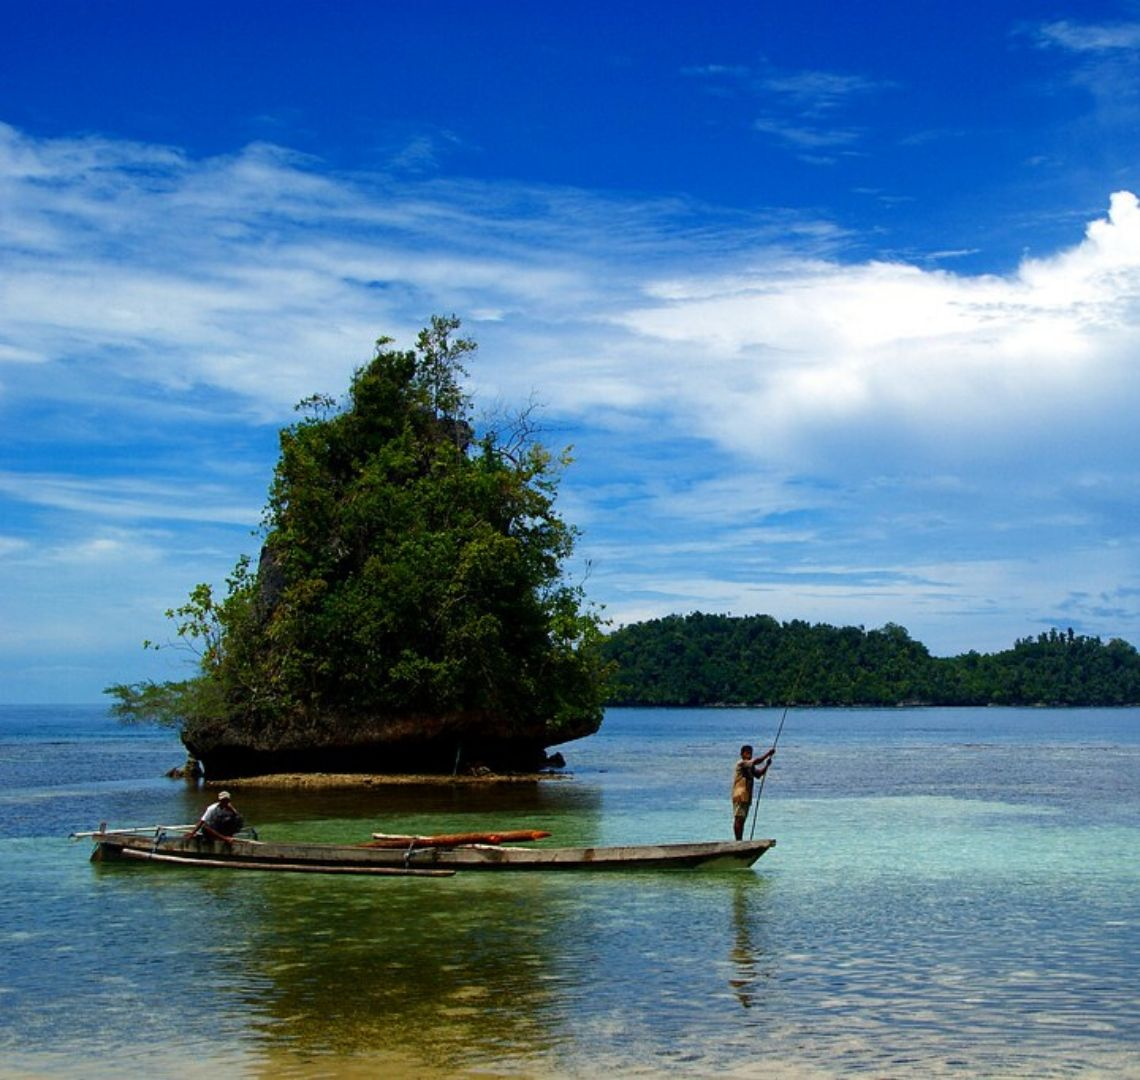 Best Secret Islands in Indonesia - two men sail past on a long boat. The one at the very back is steering and the one at the front is holding a long pole. They are in crystal clear shallow water and you can see the rocks and seaweed at the bottom. Behind them is a tiny island which basically looks like a tree. Behind that after an expanse of water are more trees